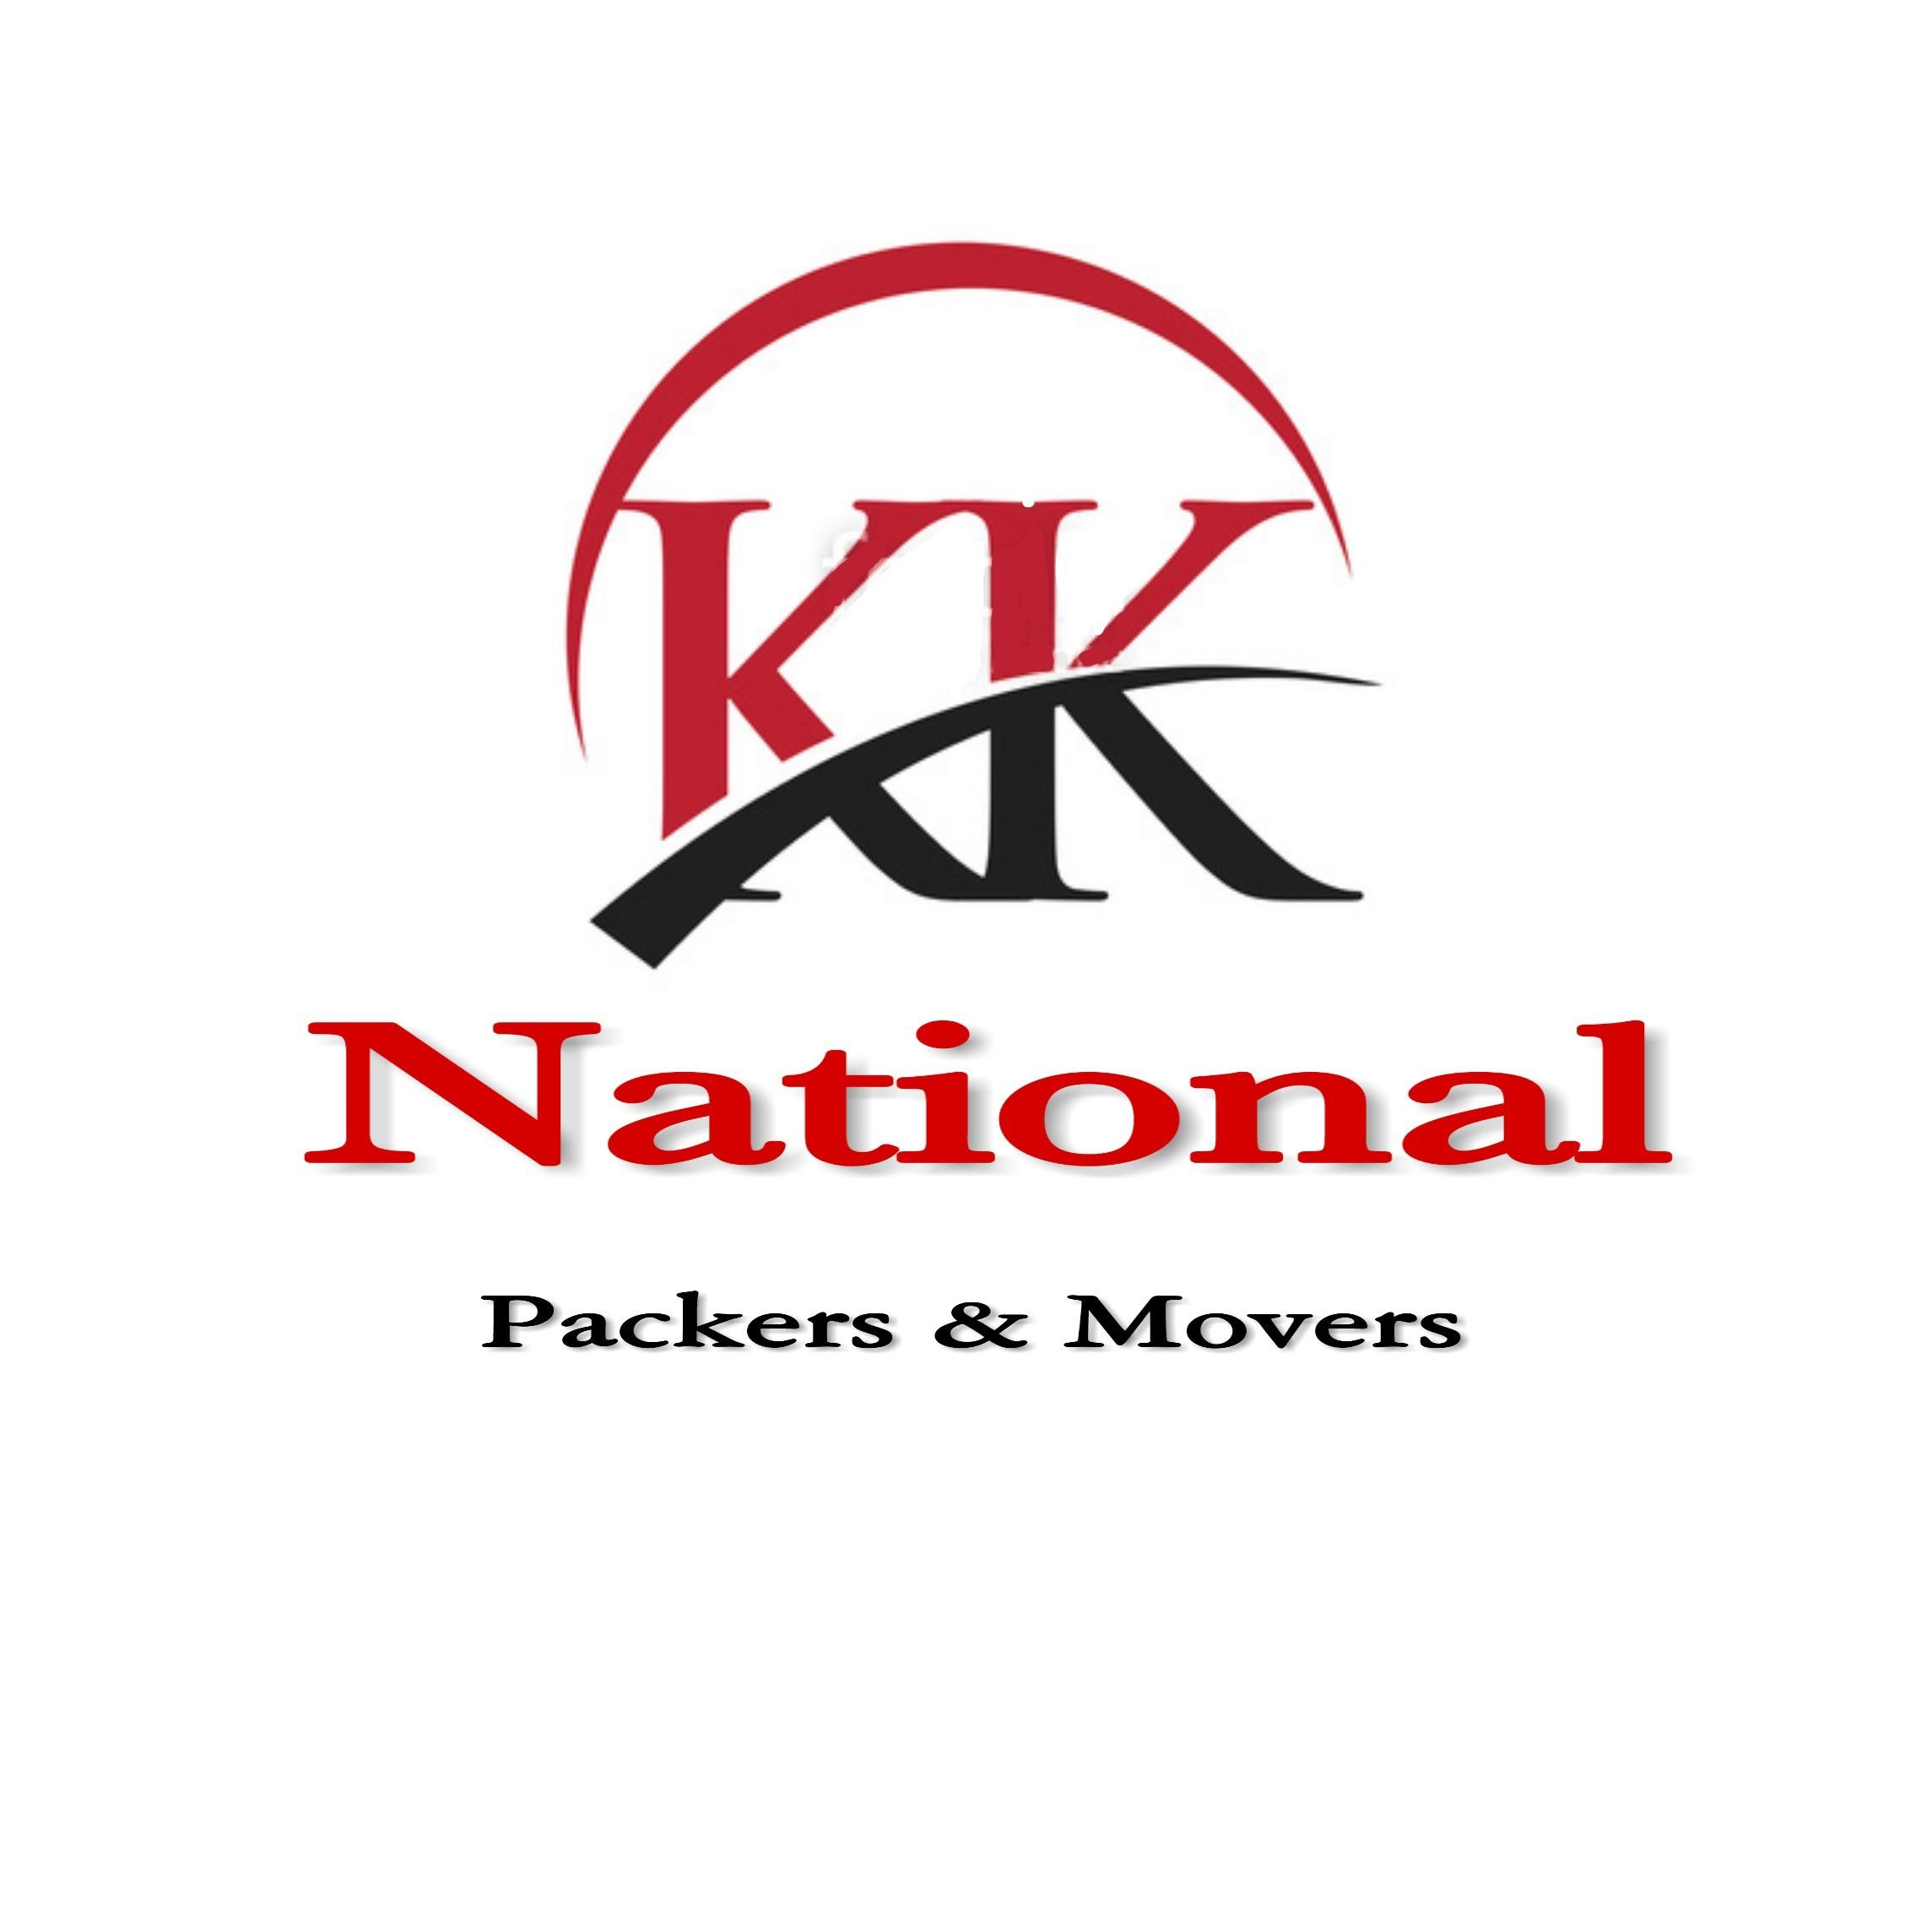 KK National Packers And Movers